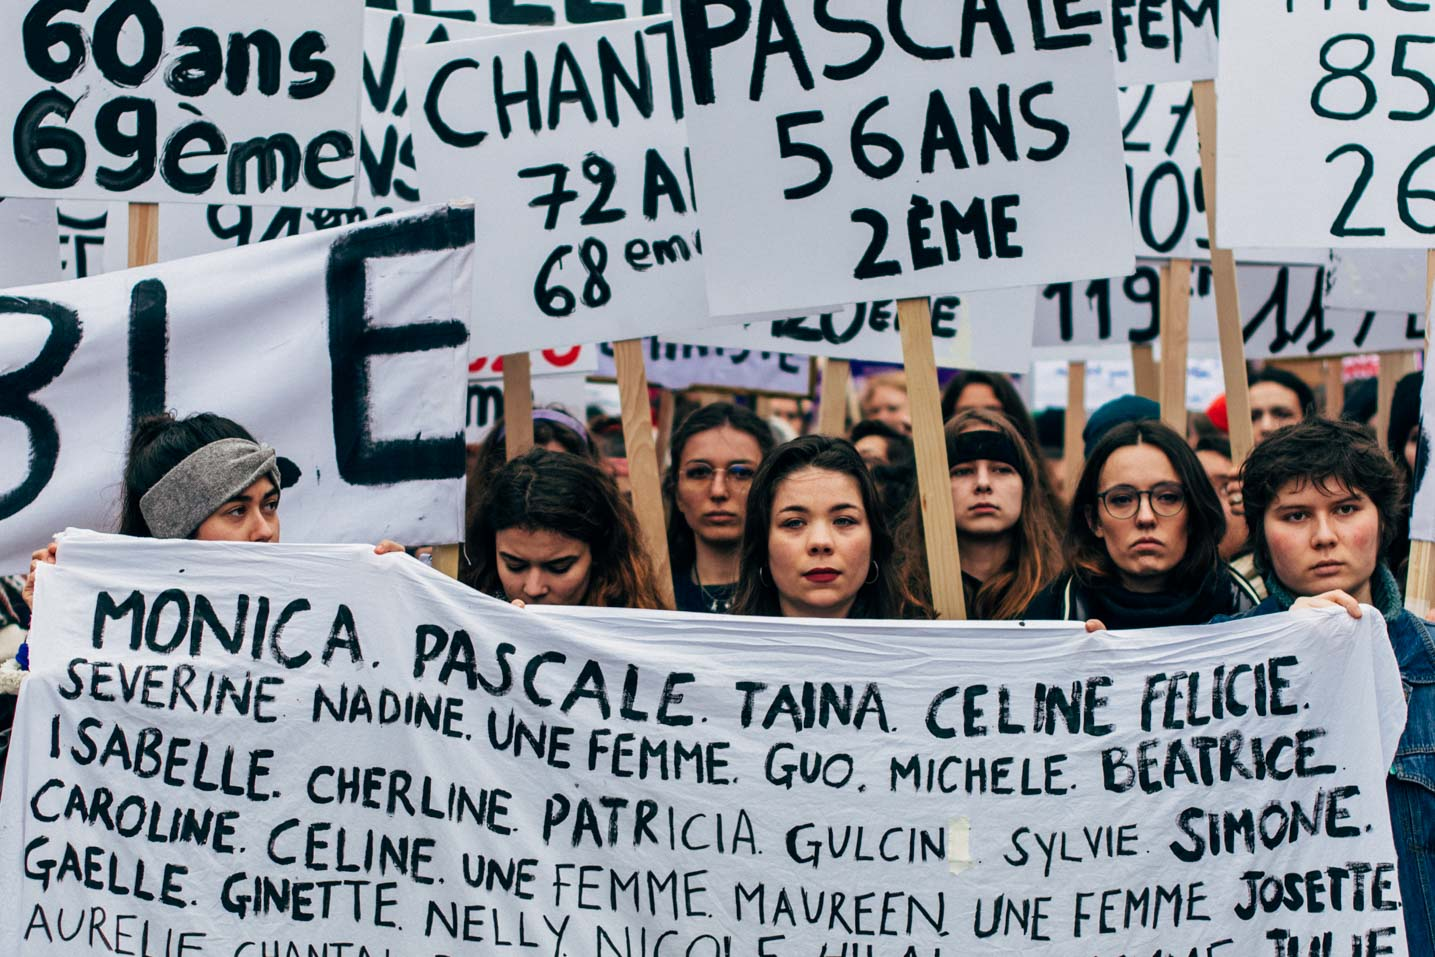 Journée internationale des droits de la femme à Paris  - Paris women rights day